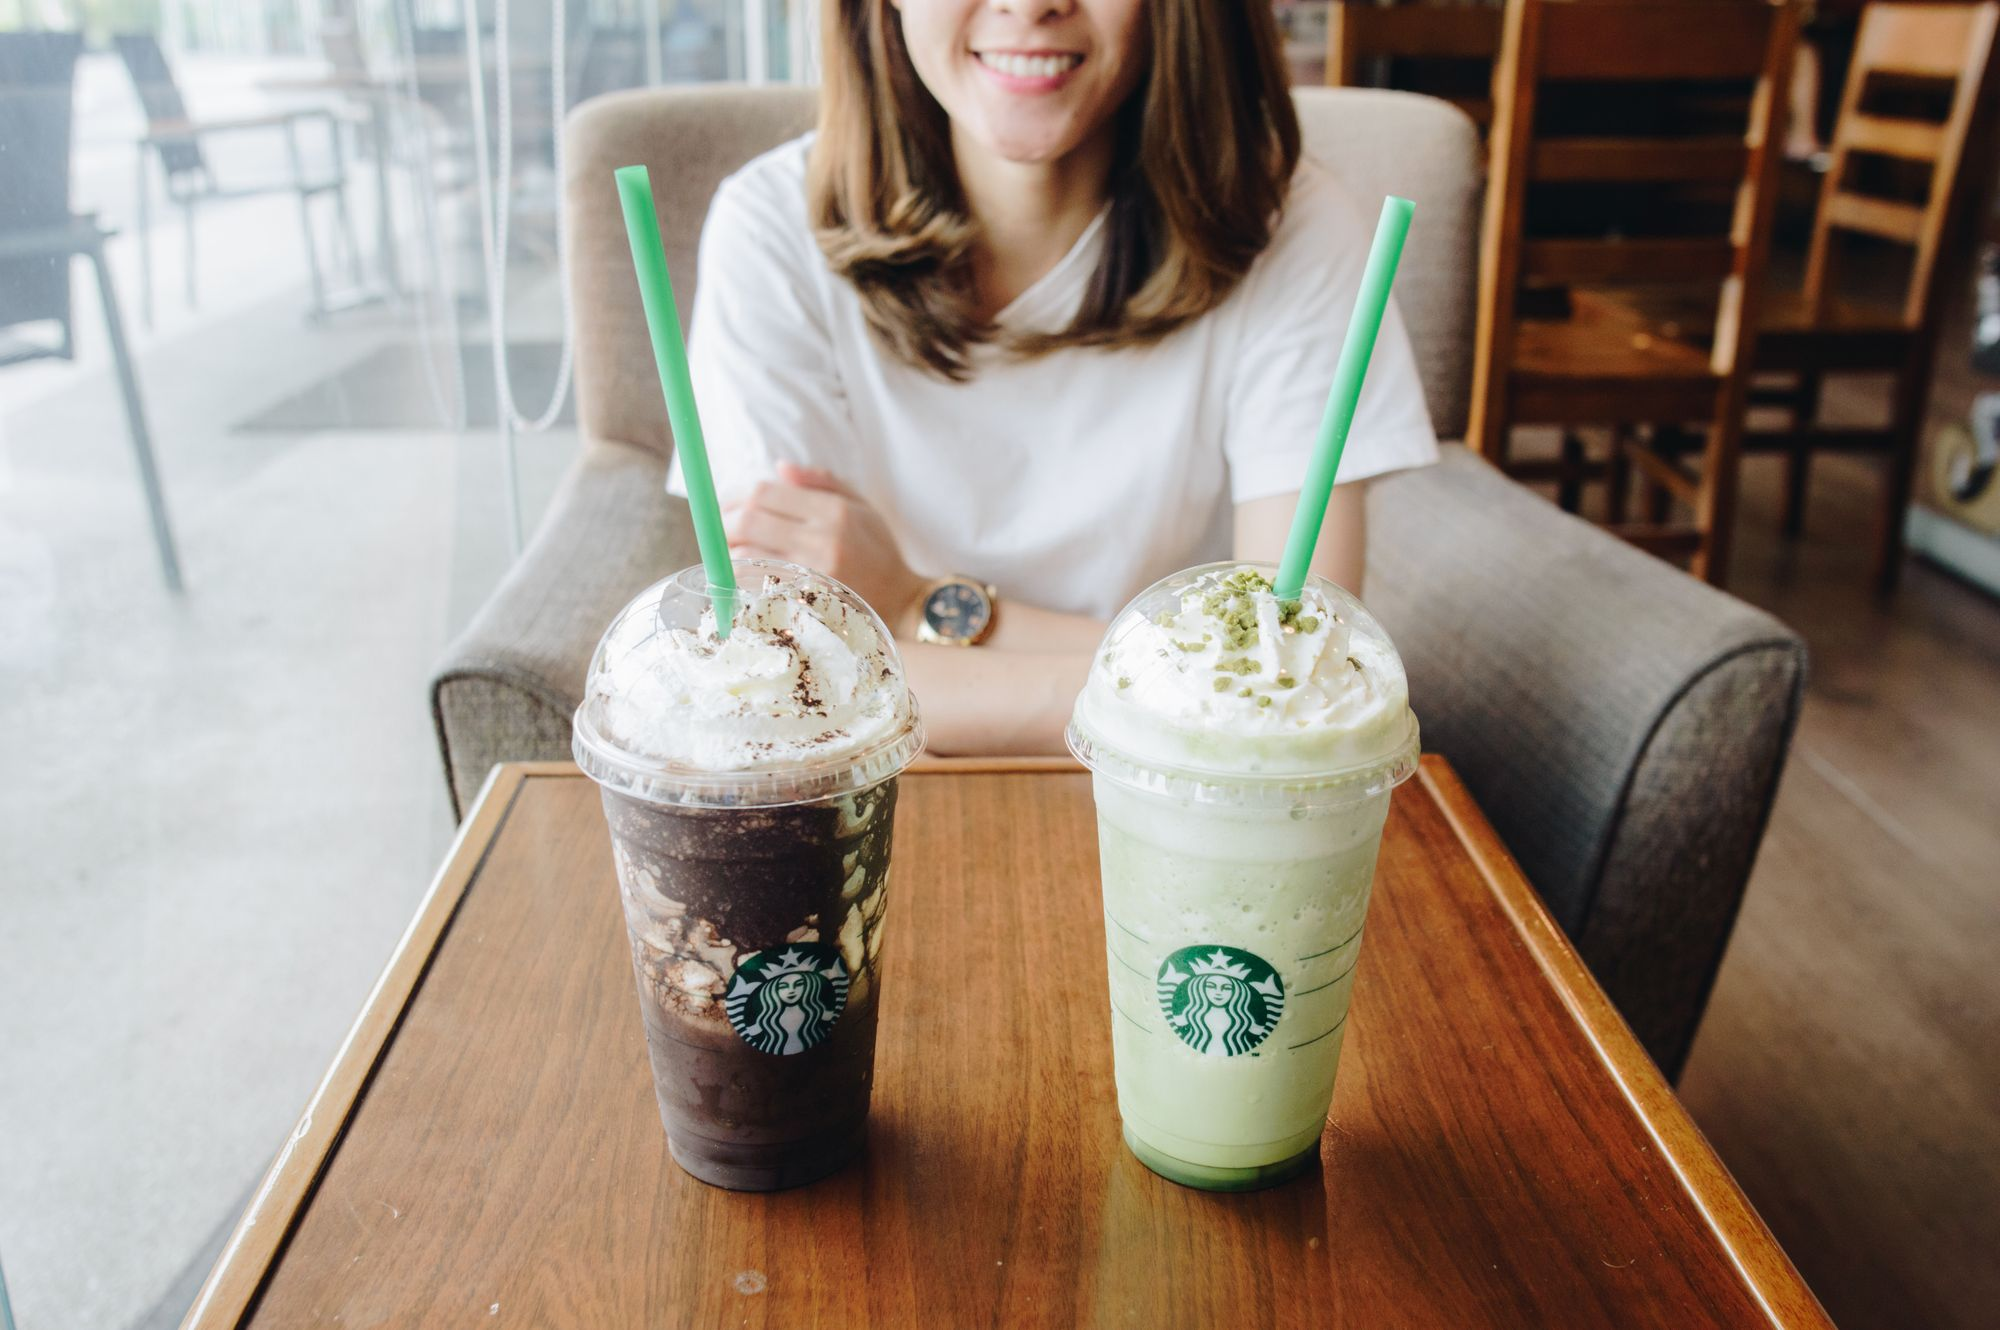 From Kopitiam to Starbucks: Our favourite Secret Menu items